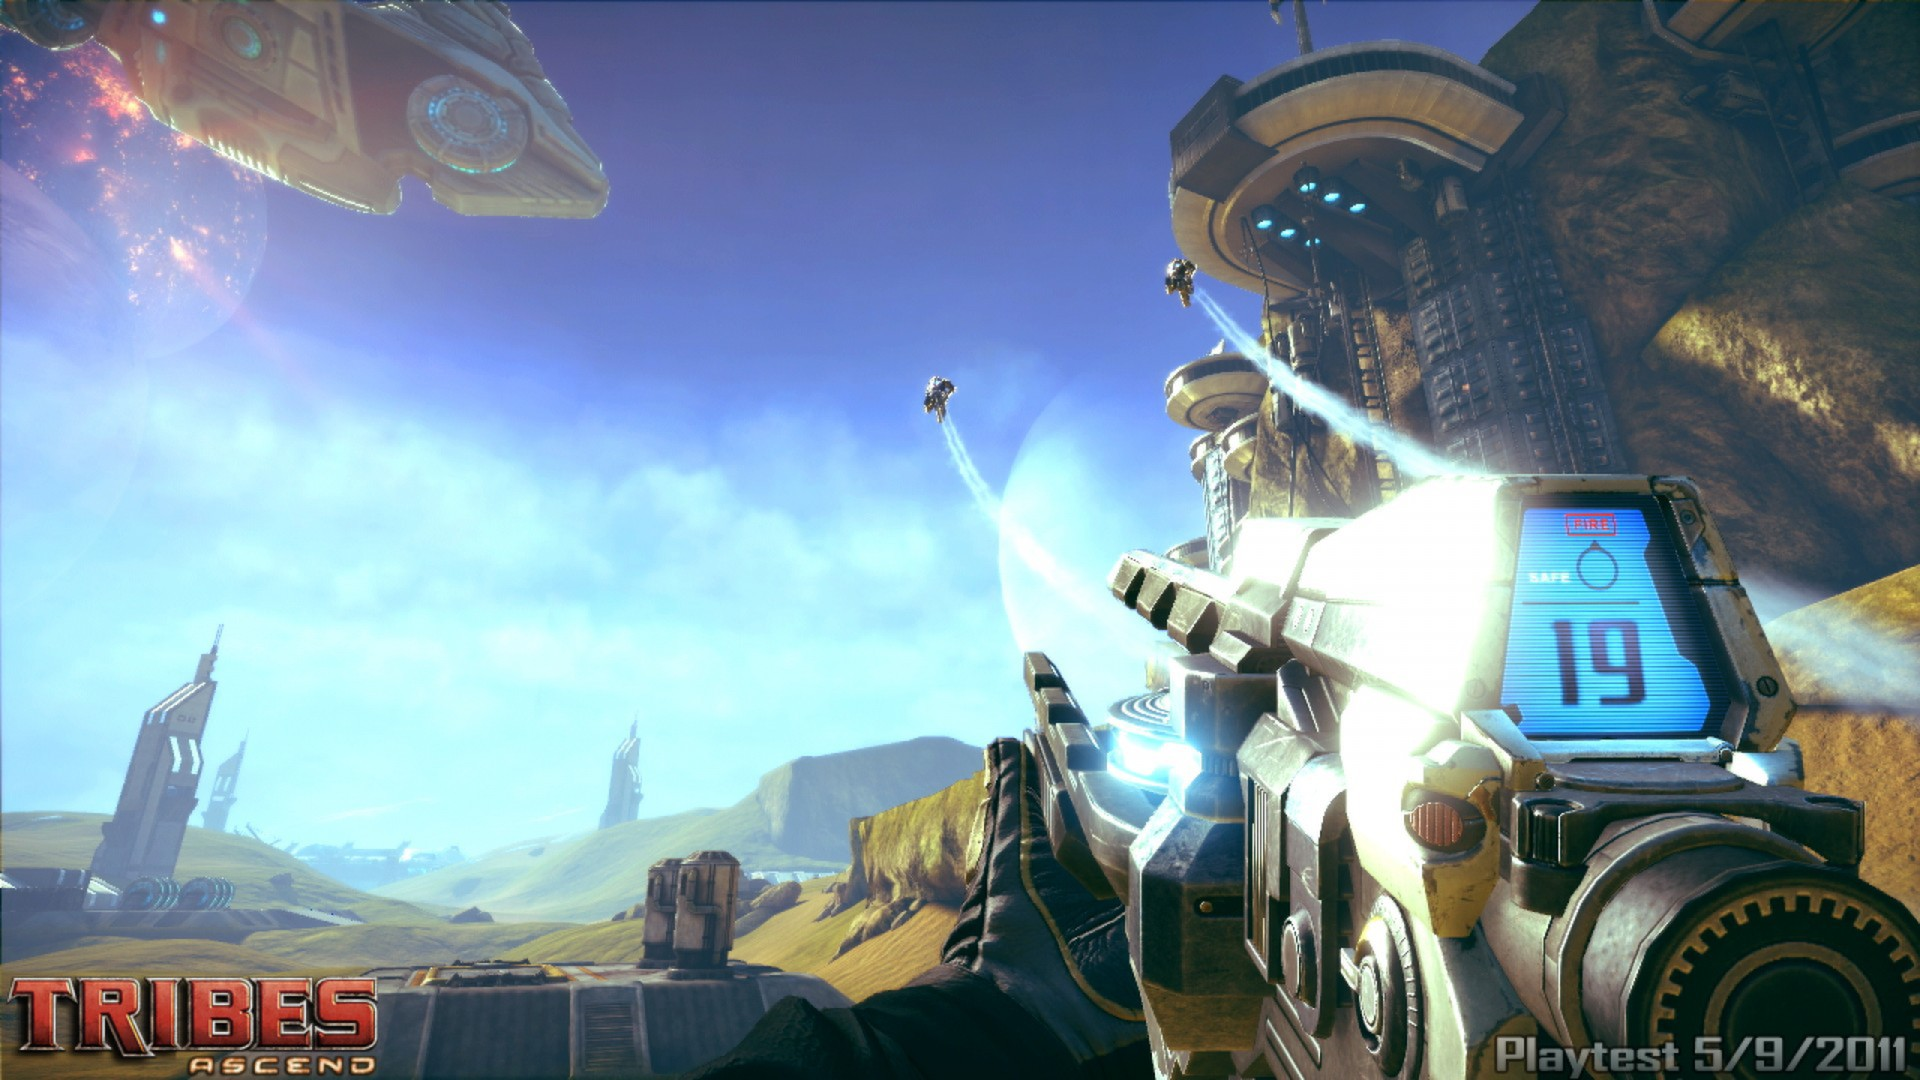 Tribes Ascend Backgrounds on Wallpapers Vista